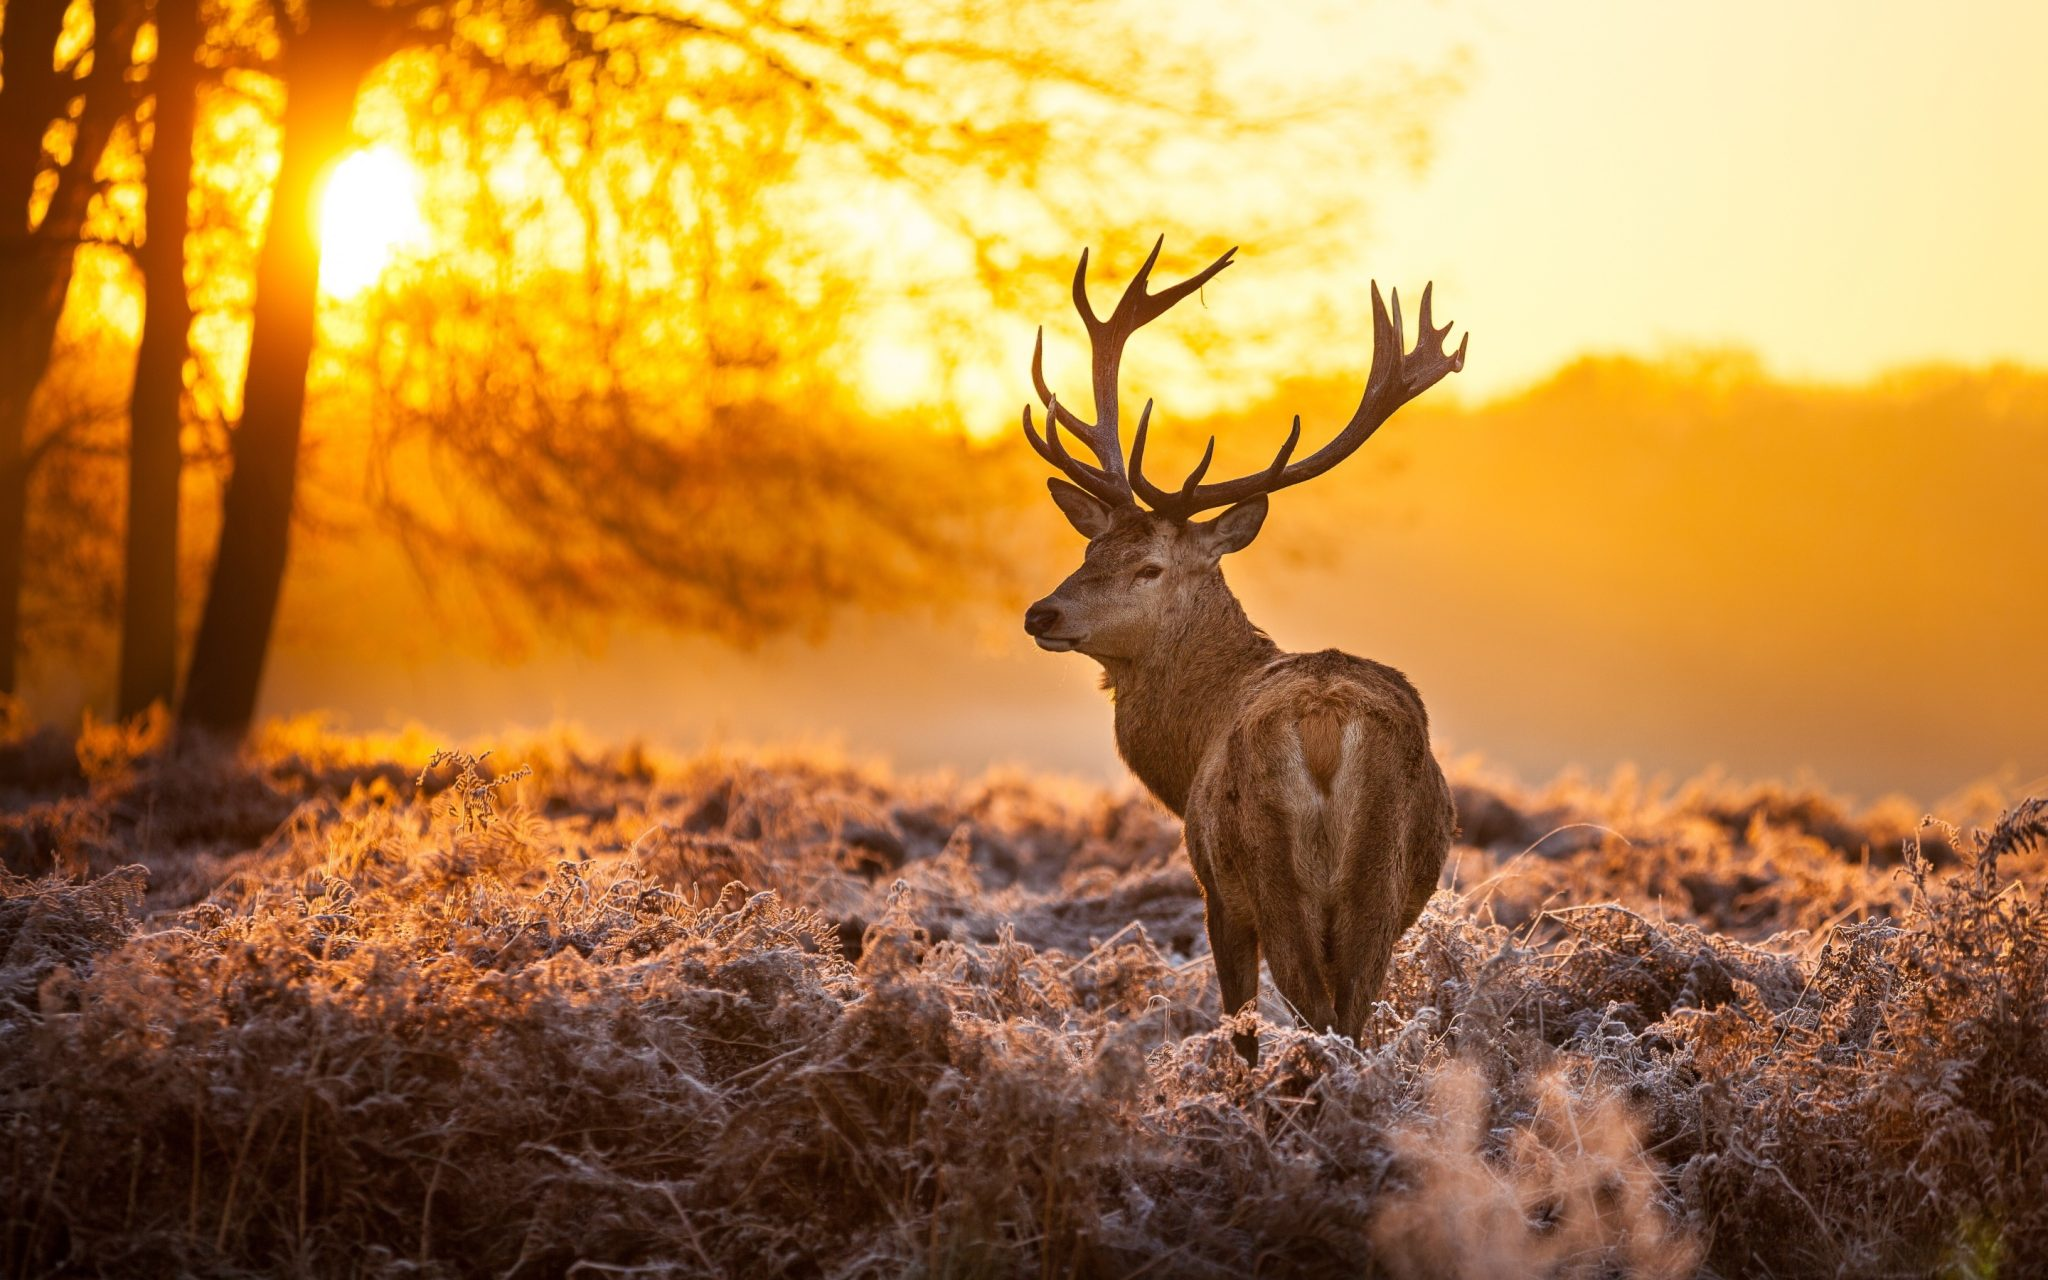 10 Most Popular Wild Animals Wallpapers Free Download Full: Free Deer Wallpapers HD And Desktop Background